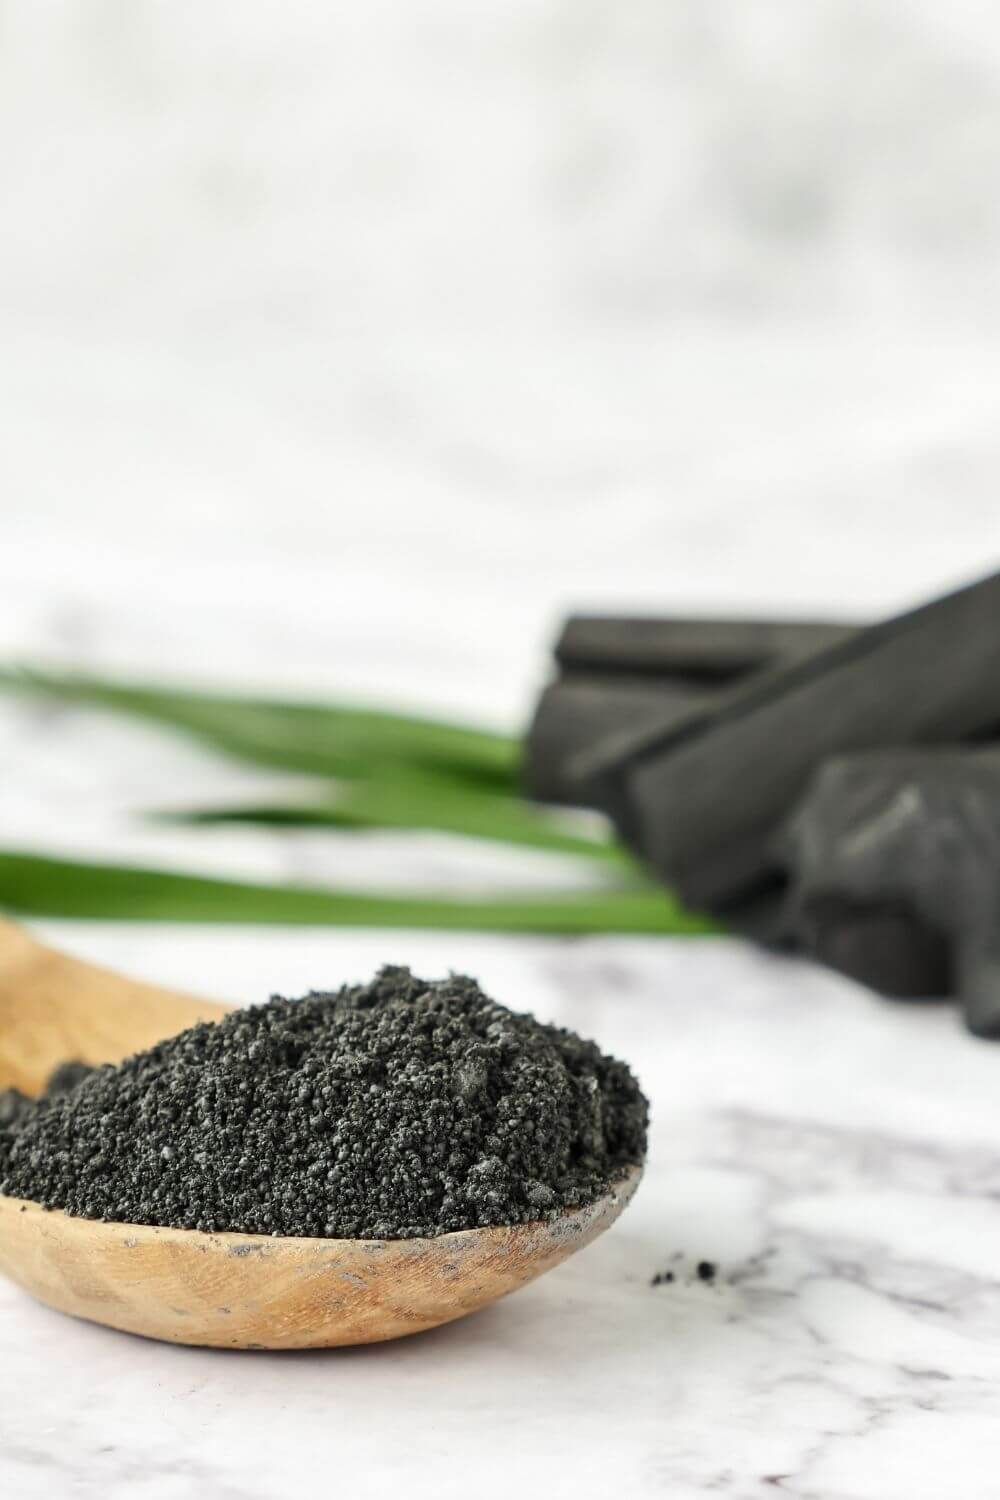 powdered activated charcoal in bamboo spoon